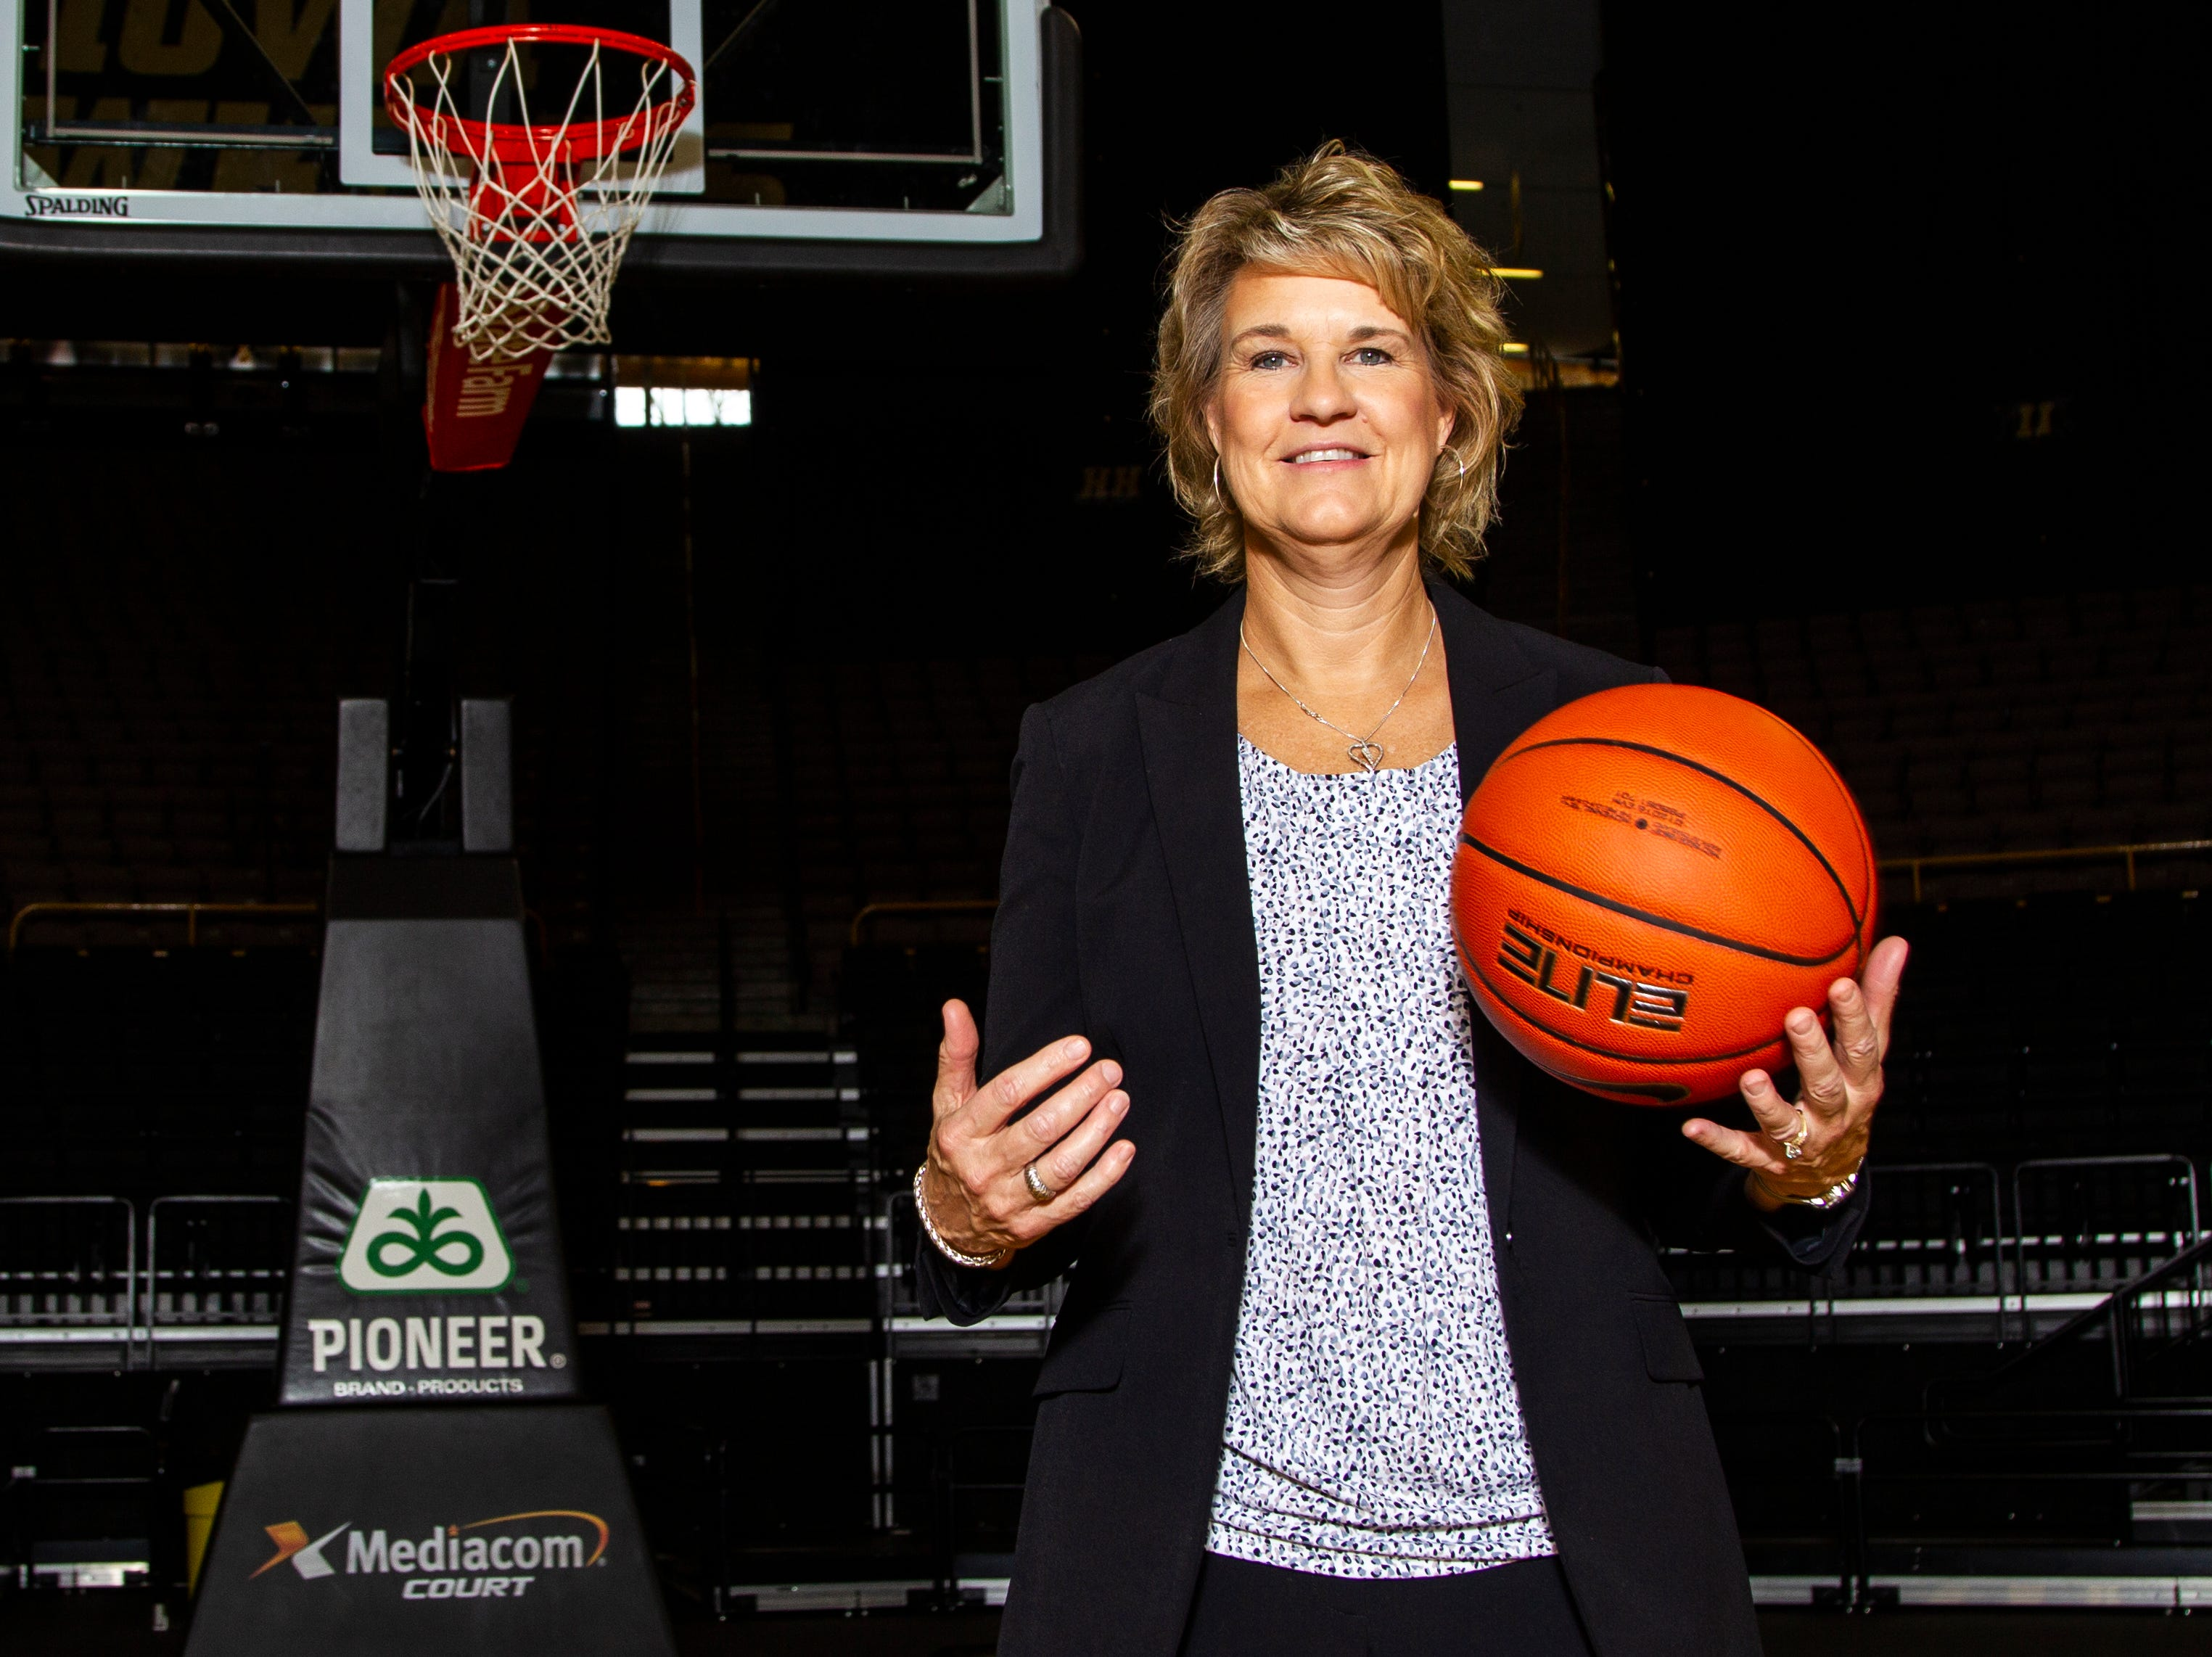 Iowa head coach Lisa Bluder poses for a portrait during Hawkeye women's basketball media day on Wednesday, Oct. 31, 2018, at Carver-Hawkeye Arena in Iowa City.